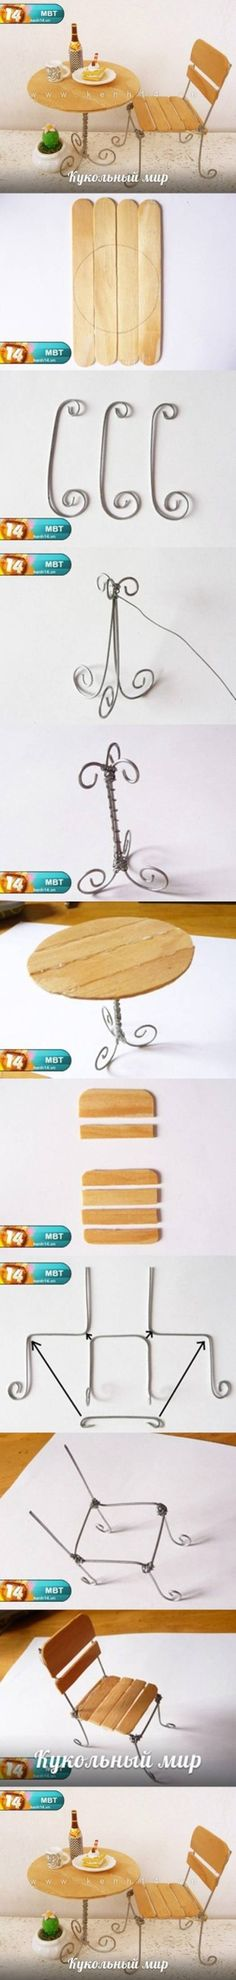 DIY Popsicle Stick Desk and Chair DIY Popsicle Stick Desk and Chair by diyforever